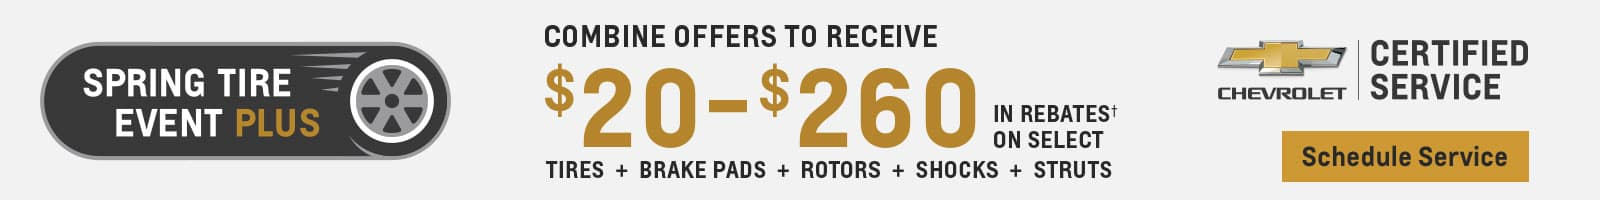 Spring Tire Deal